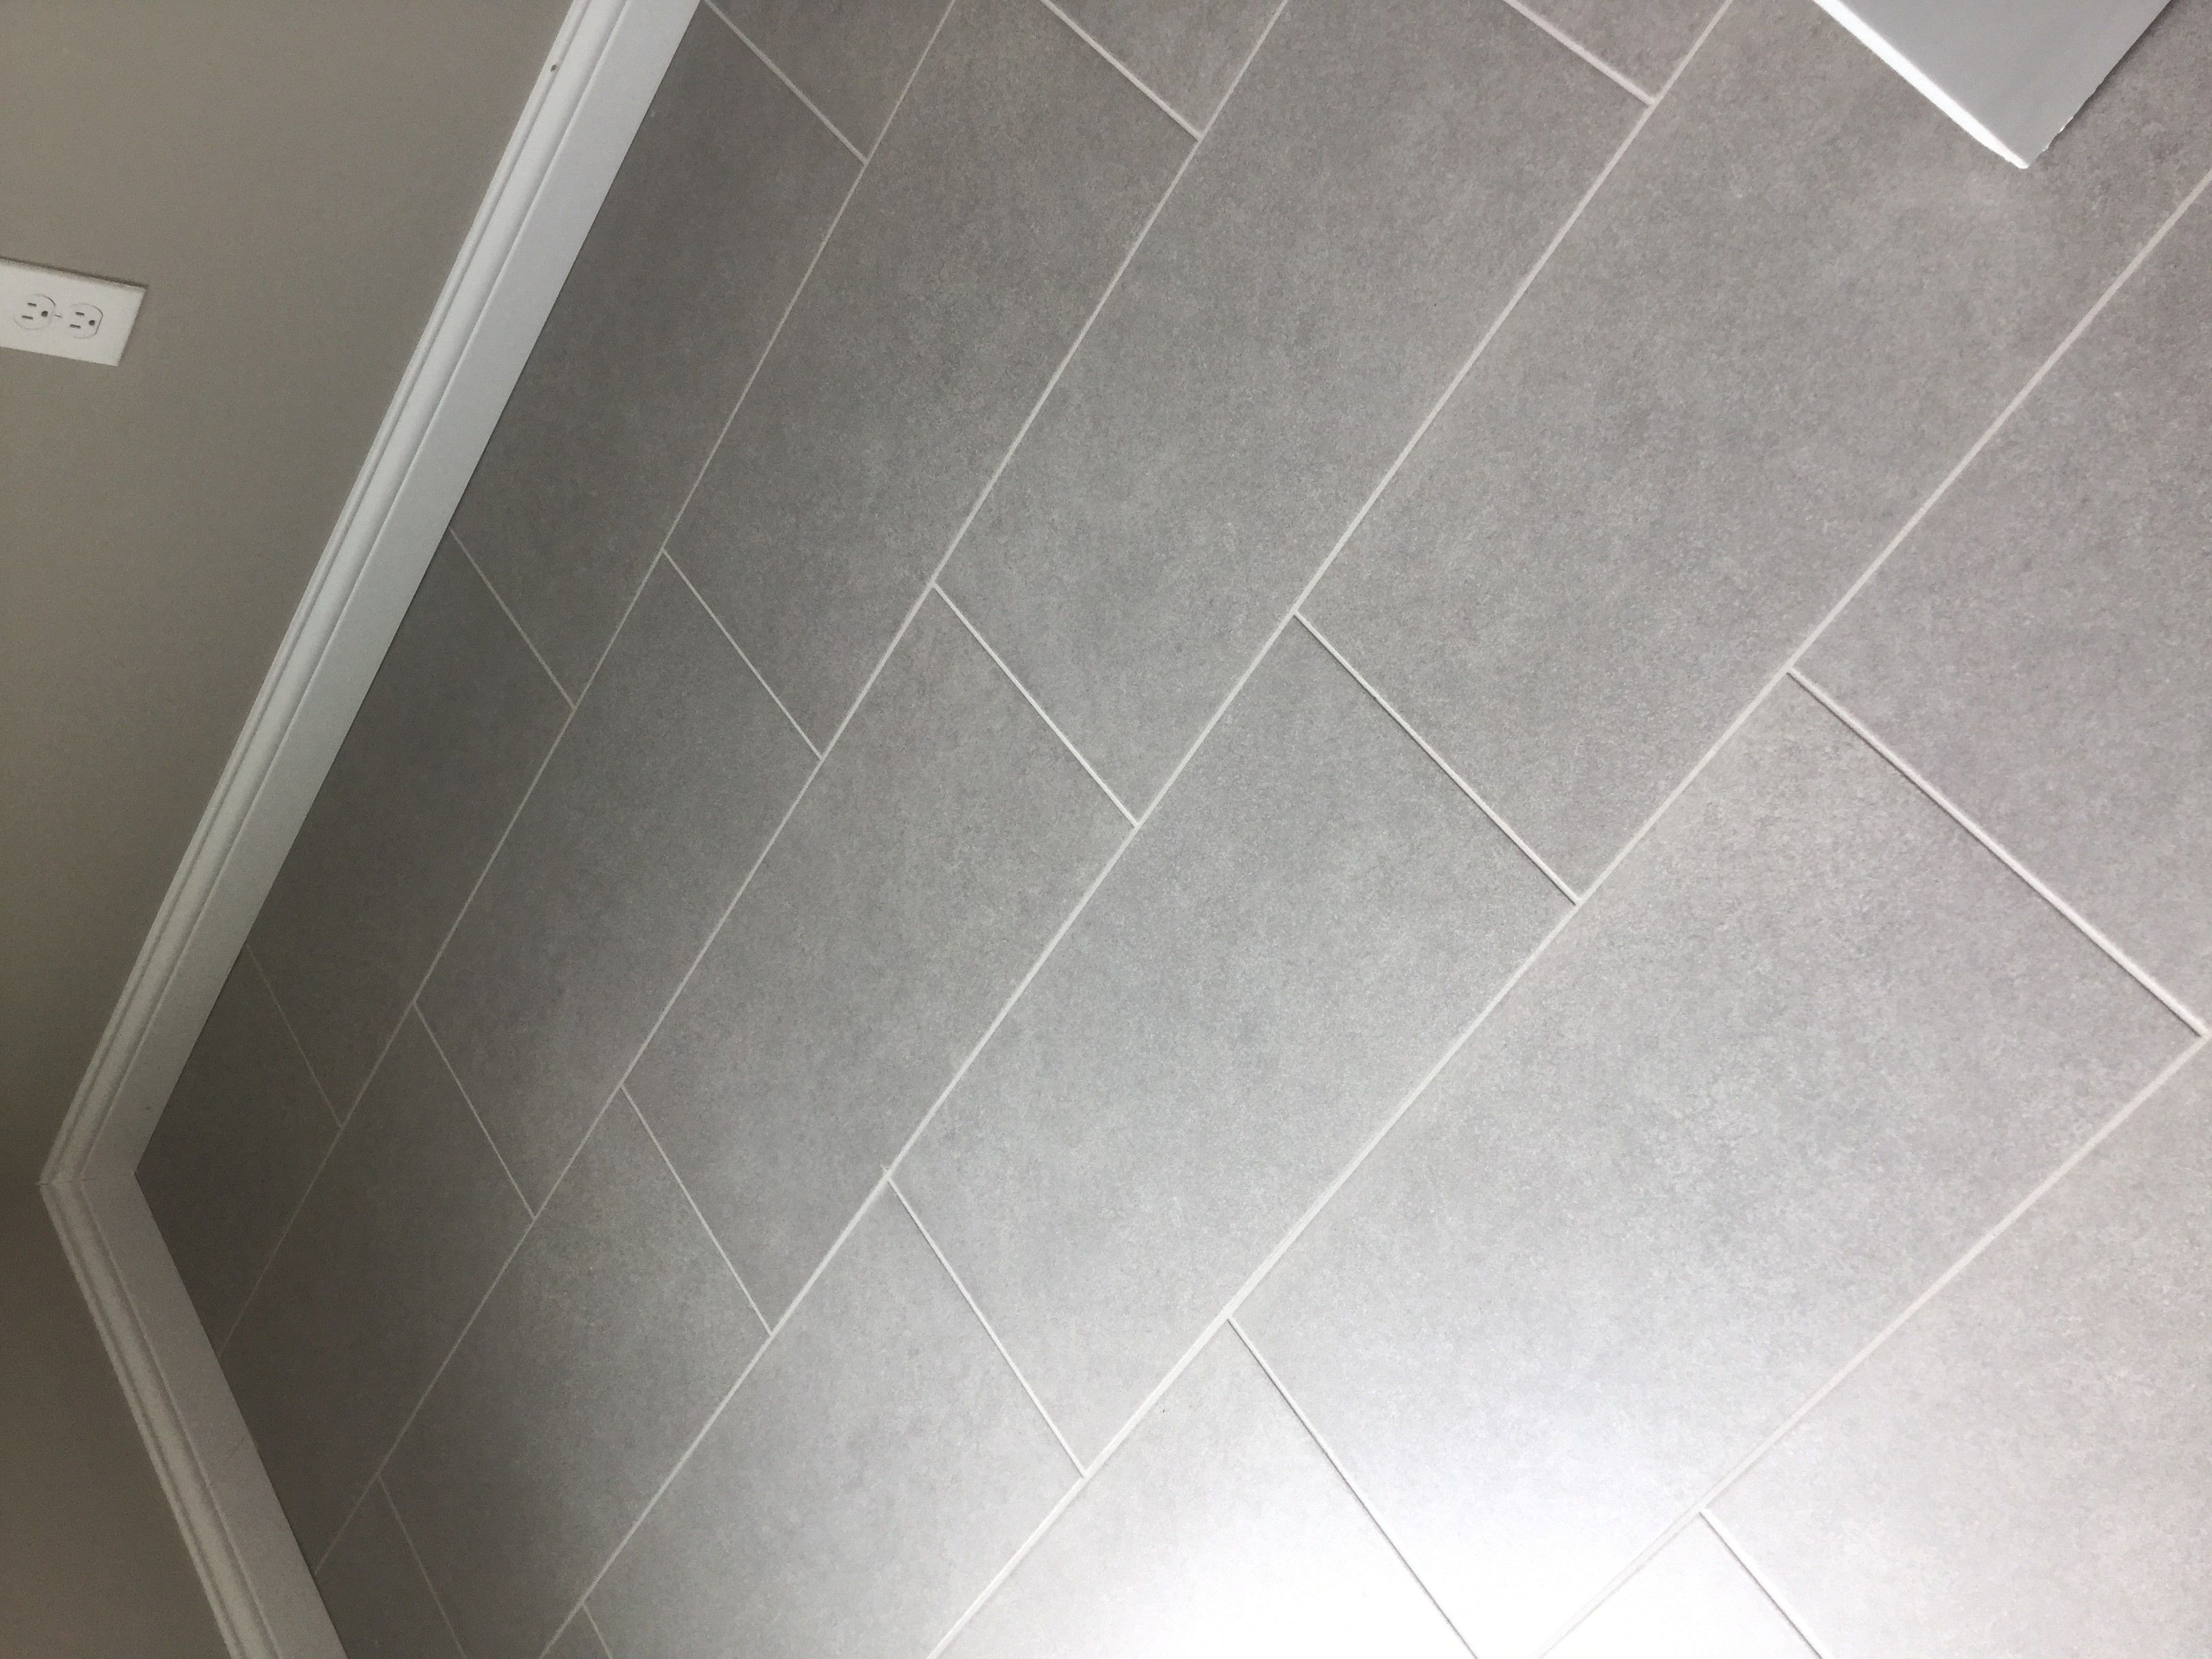 Parkway 12x24 gray floor tile mi homes floor tile pinterest parkway 12x24 gray floor tile dailygadgetfo Choice Image